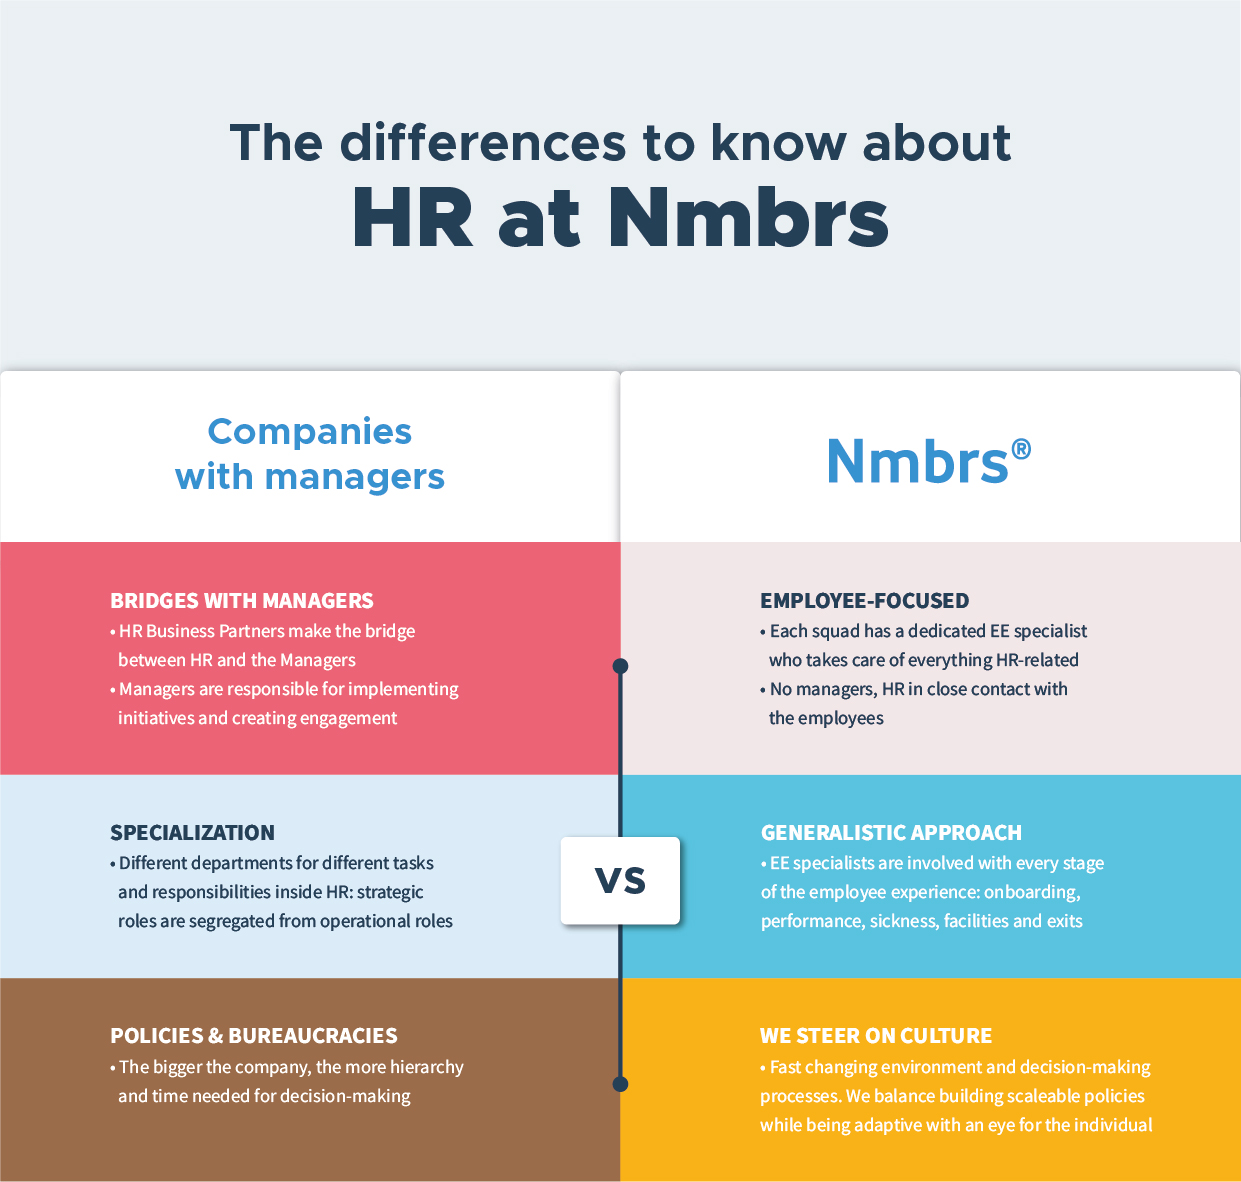 The differences to know about HR at Nmbrs